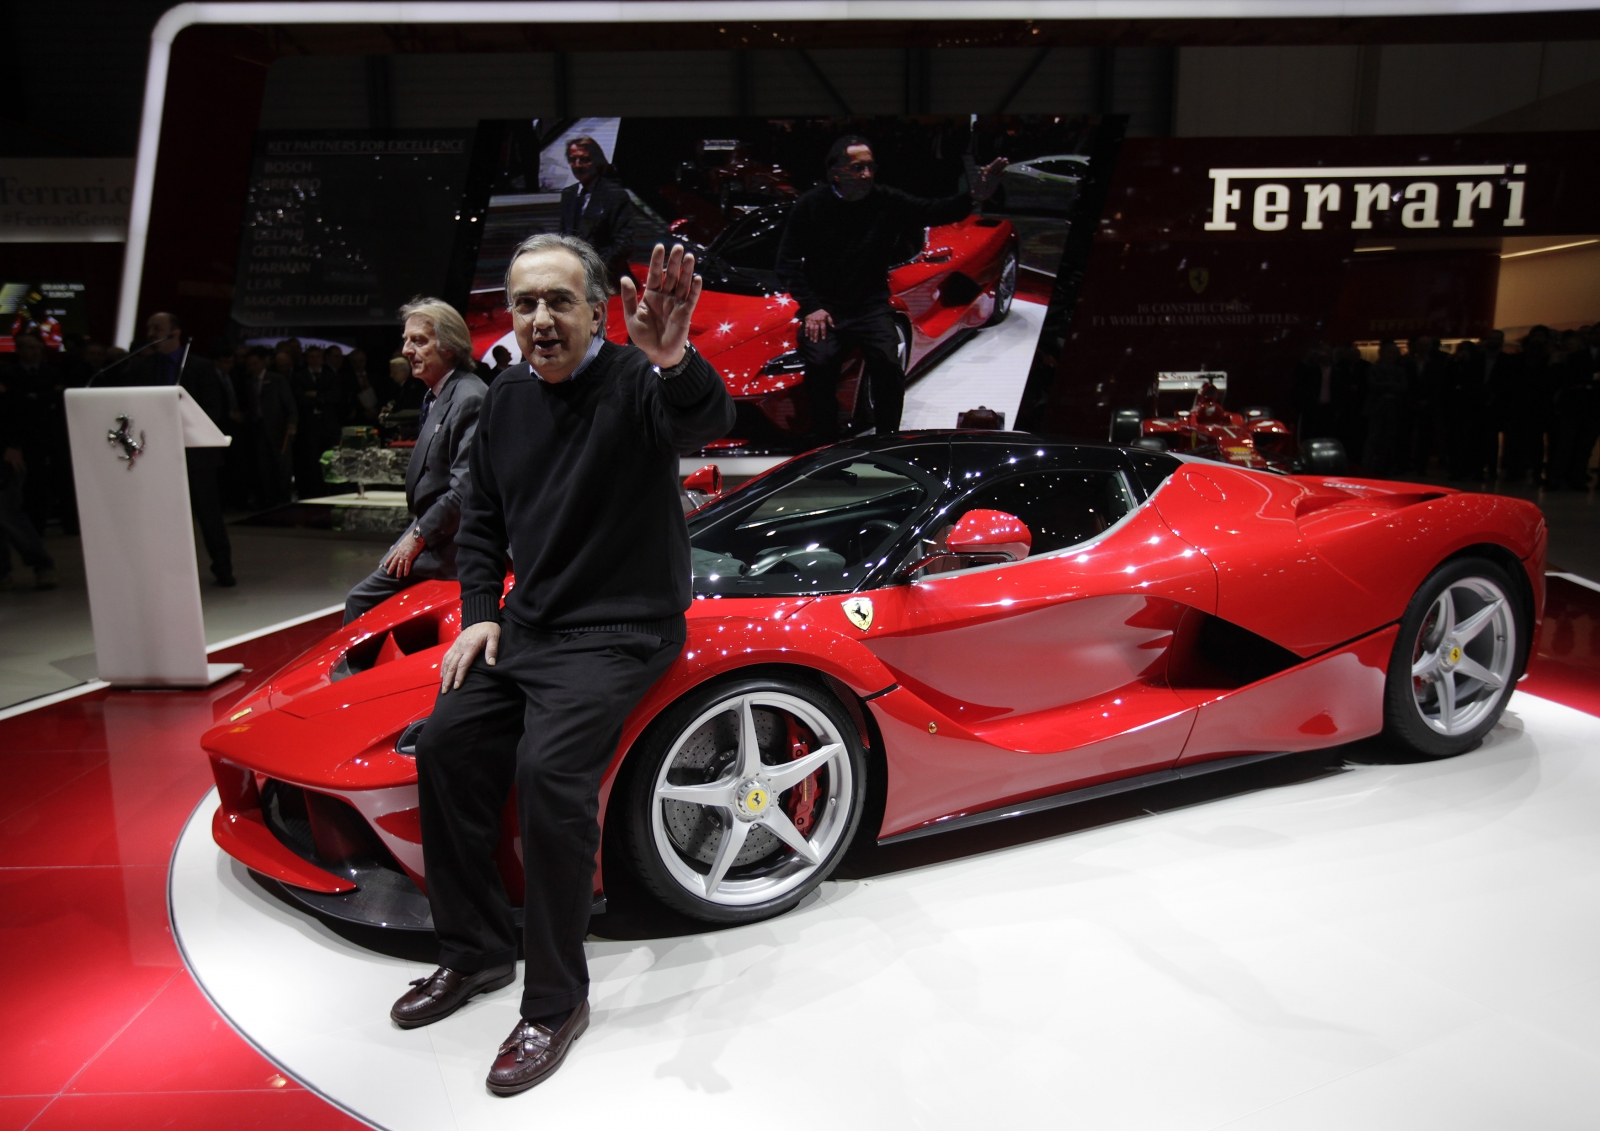 Ferrari boss Sergio Marchionne and LaFerrari